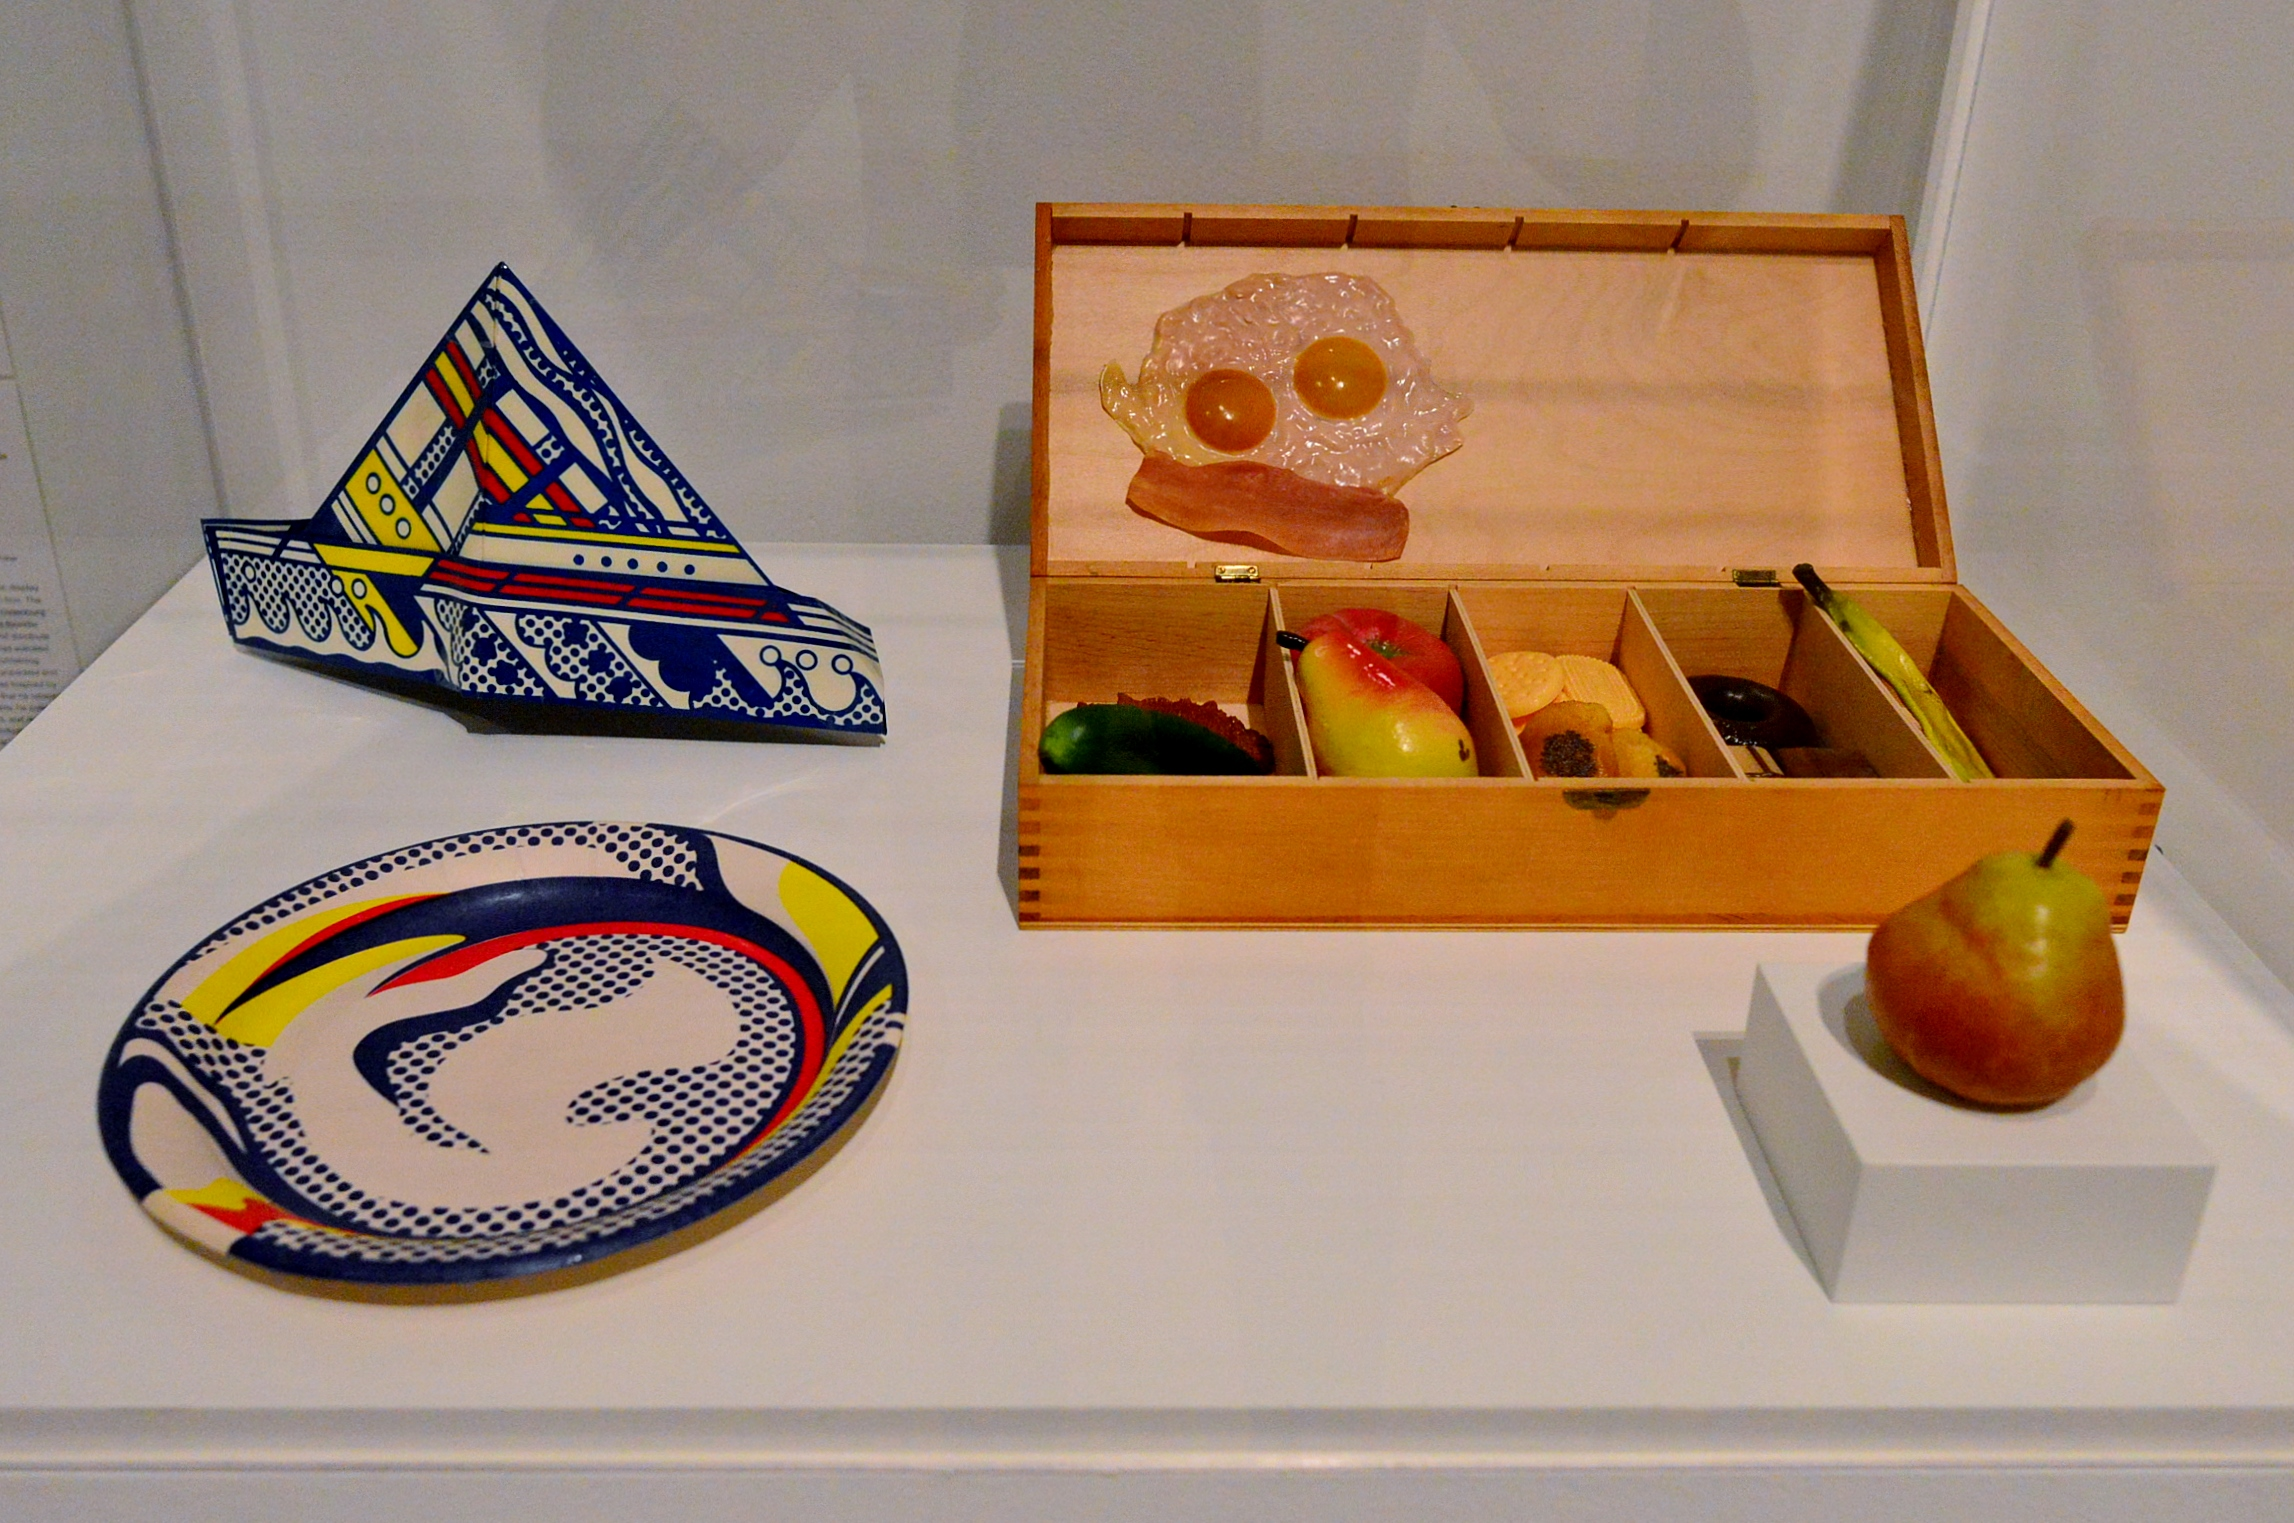 By Roy Lichtenstein (clockwise) Paper Plate and Folded Hat shown with False Food Selection and Pear by Claes Oldenburg.